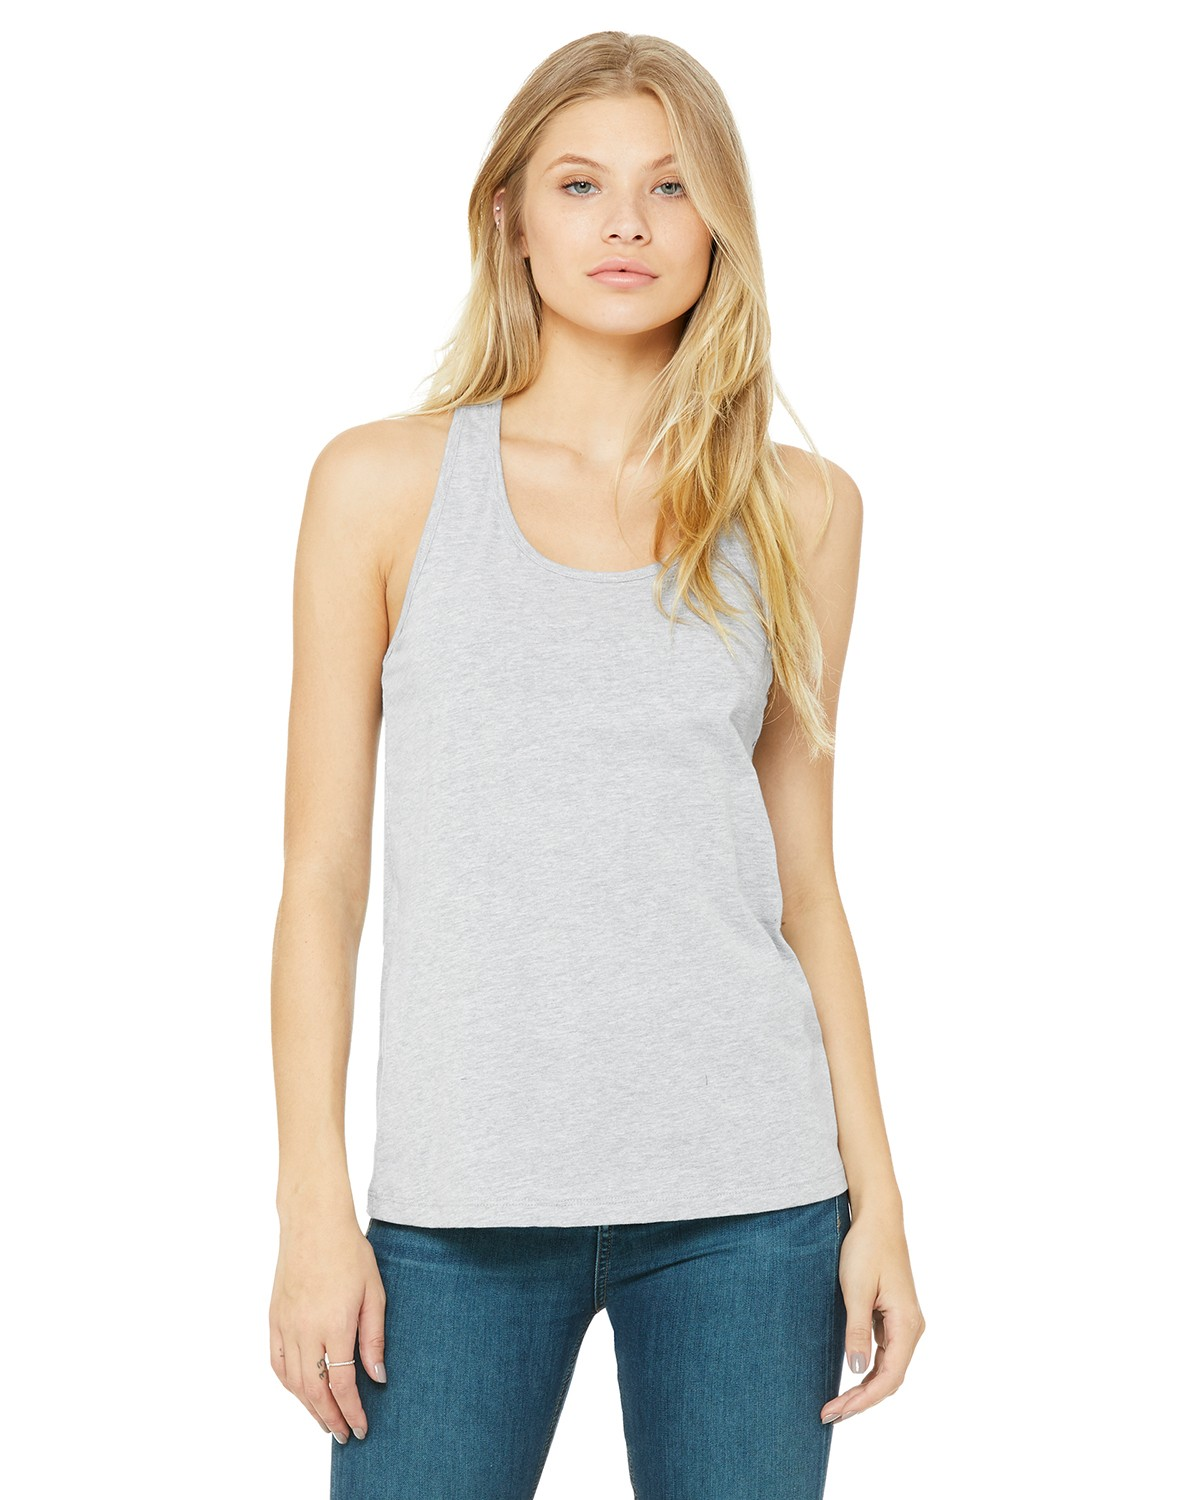 B6008 Bella + Canvas ATHLETIC HEATHER